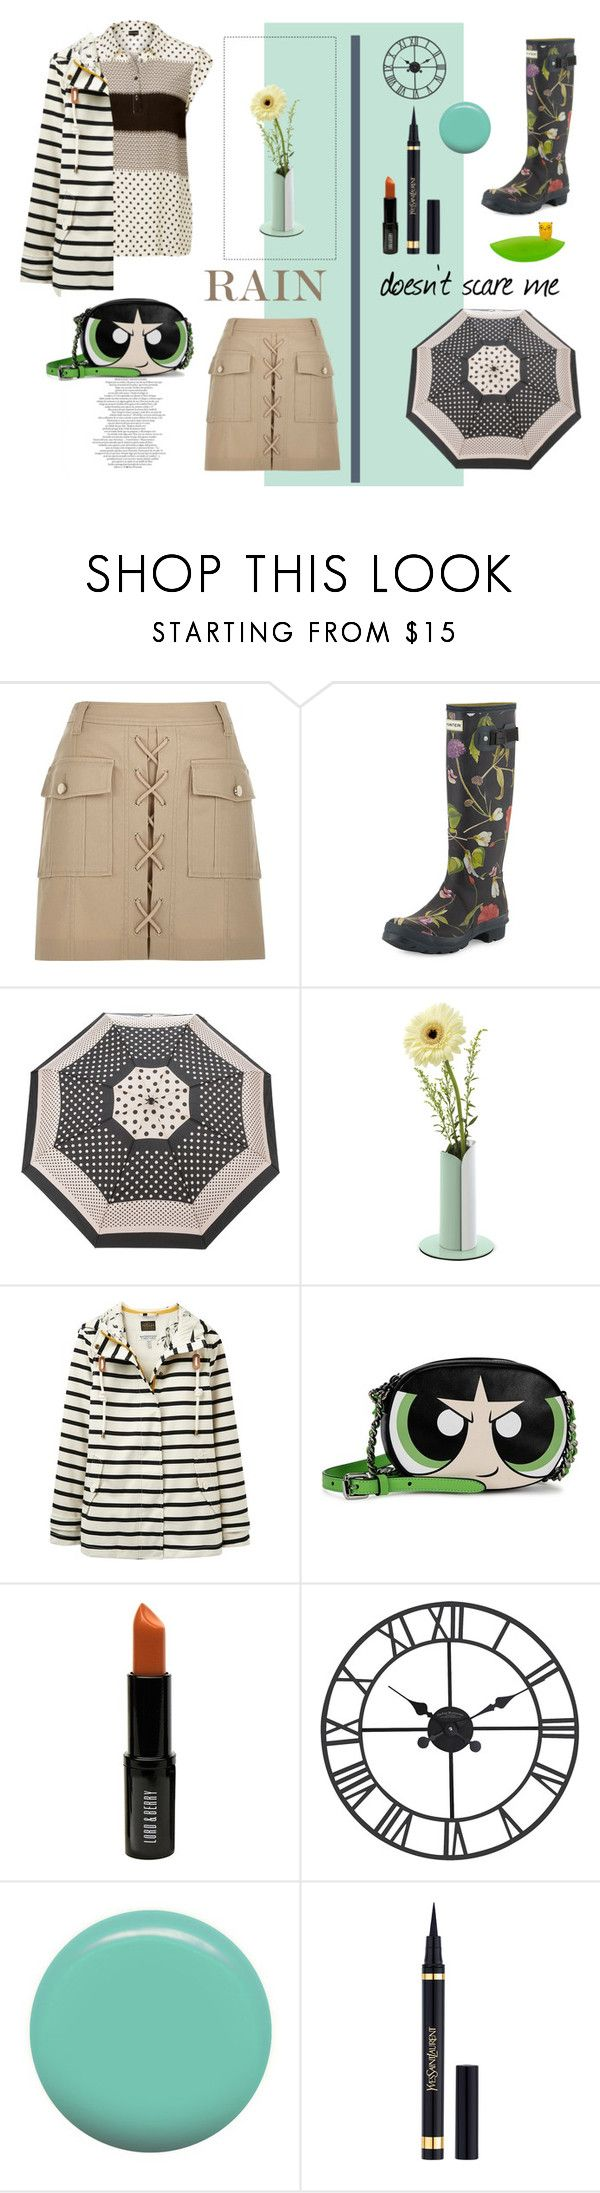 """""""Rainy days"""" by pinfi on Polyvore featuring River Island, Hunter, Marc by Marc Jacobs, Dot & Bo, Joules, Moschino, Lord & Berry, Jin Soon and Creative Bath Products"""